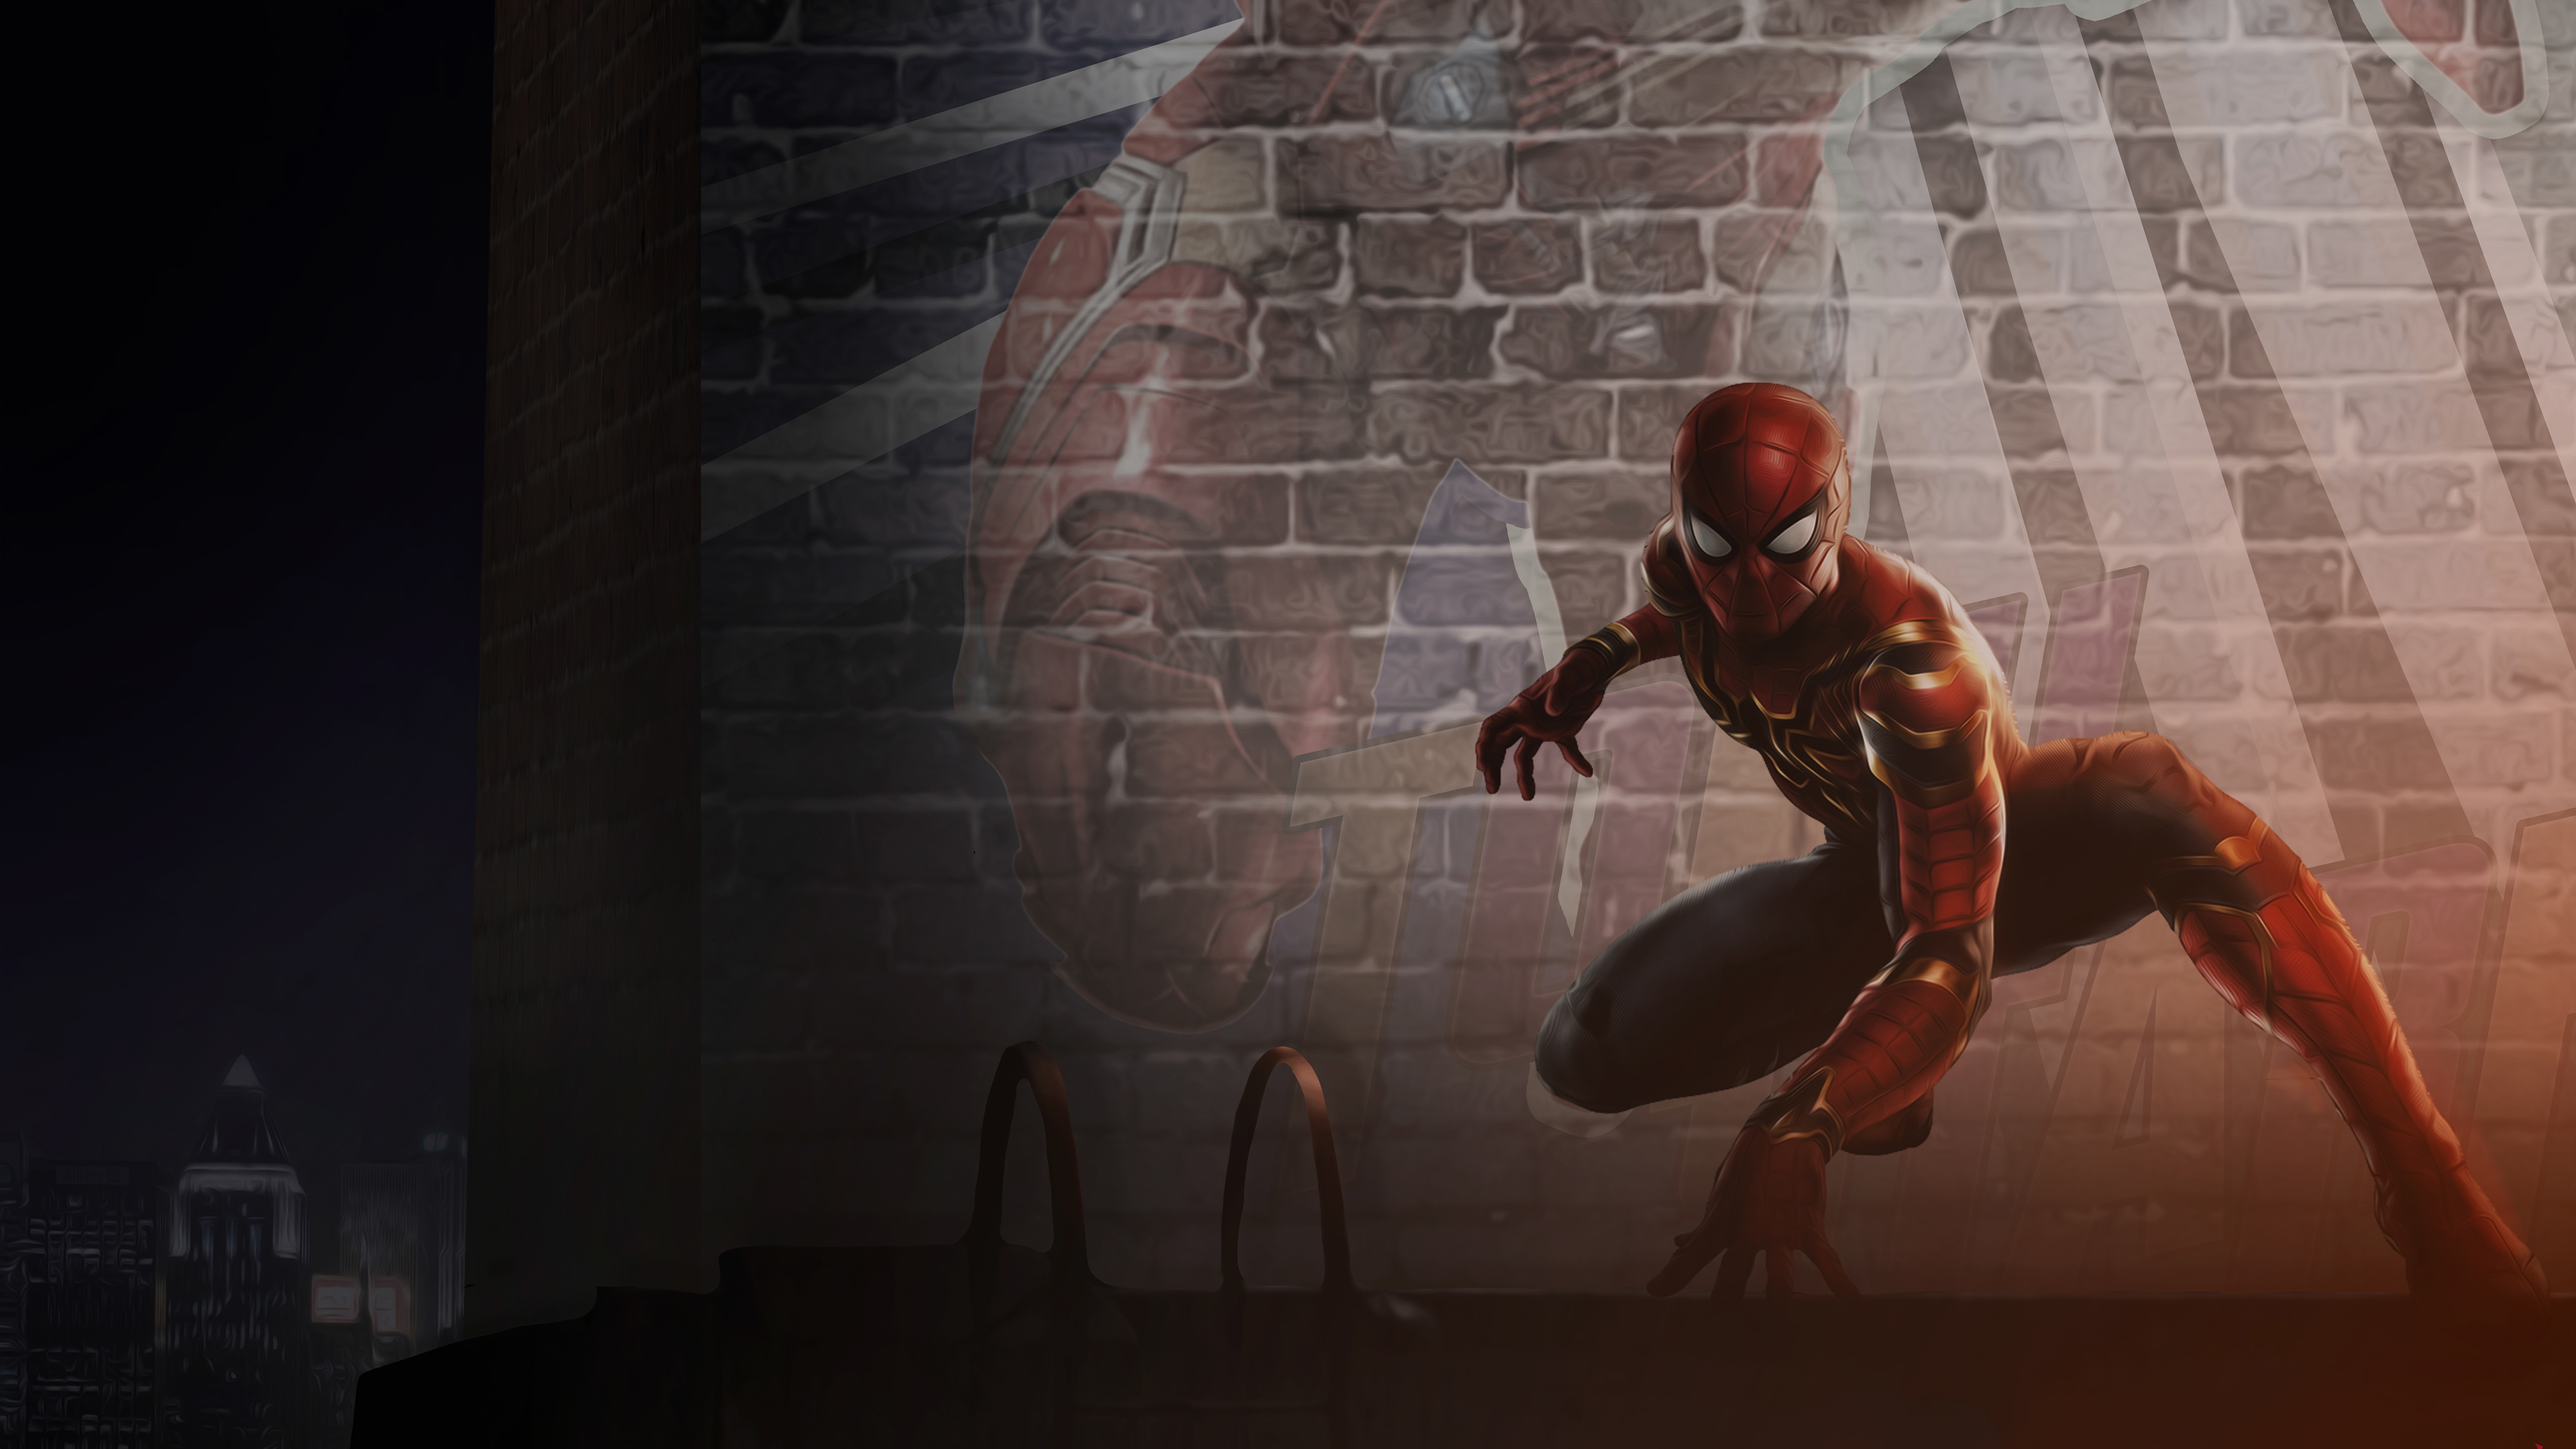 spider man far from home 2019 4k 1560535095 - Spider Man Far From Home 2019 4k - superheroes wallpapers, spiderman far from home wallpapers, movies wallpapers, hd-wallpapers, digital art wallpapers, behance wallpapers, artwork wallpapers, artist wallpapers, 2019 movies wallpapers